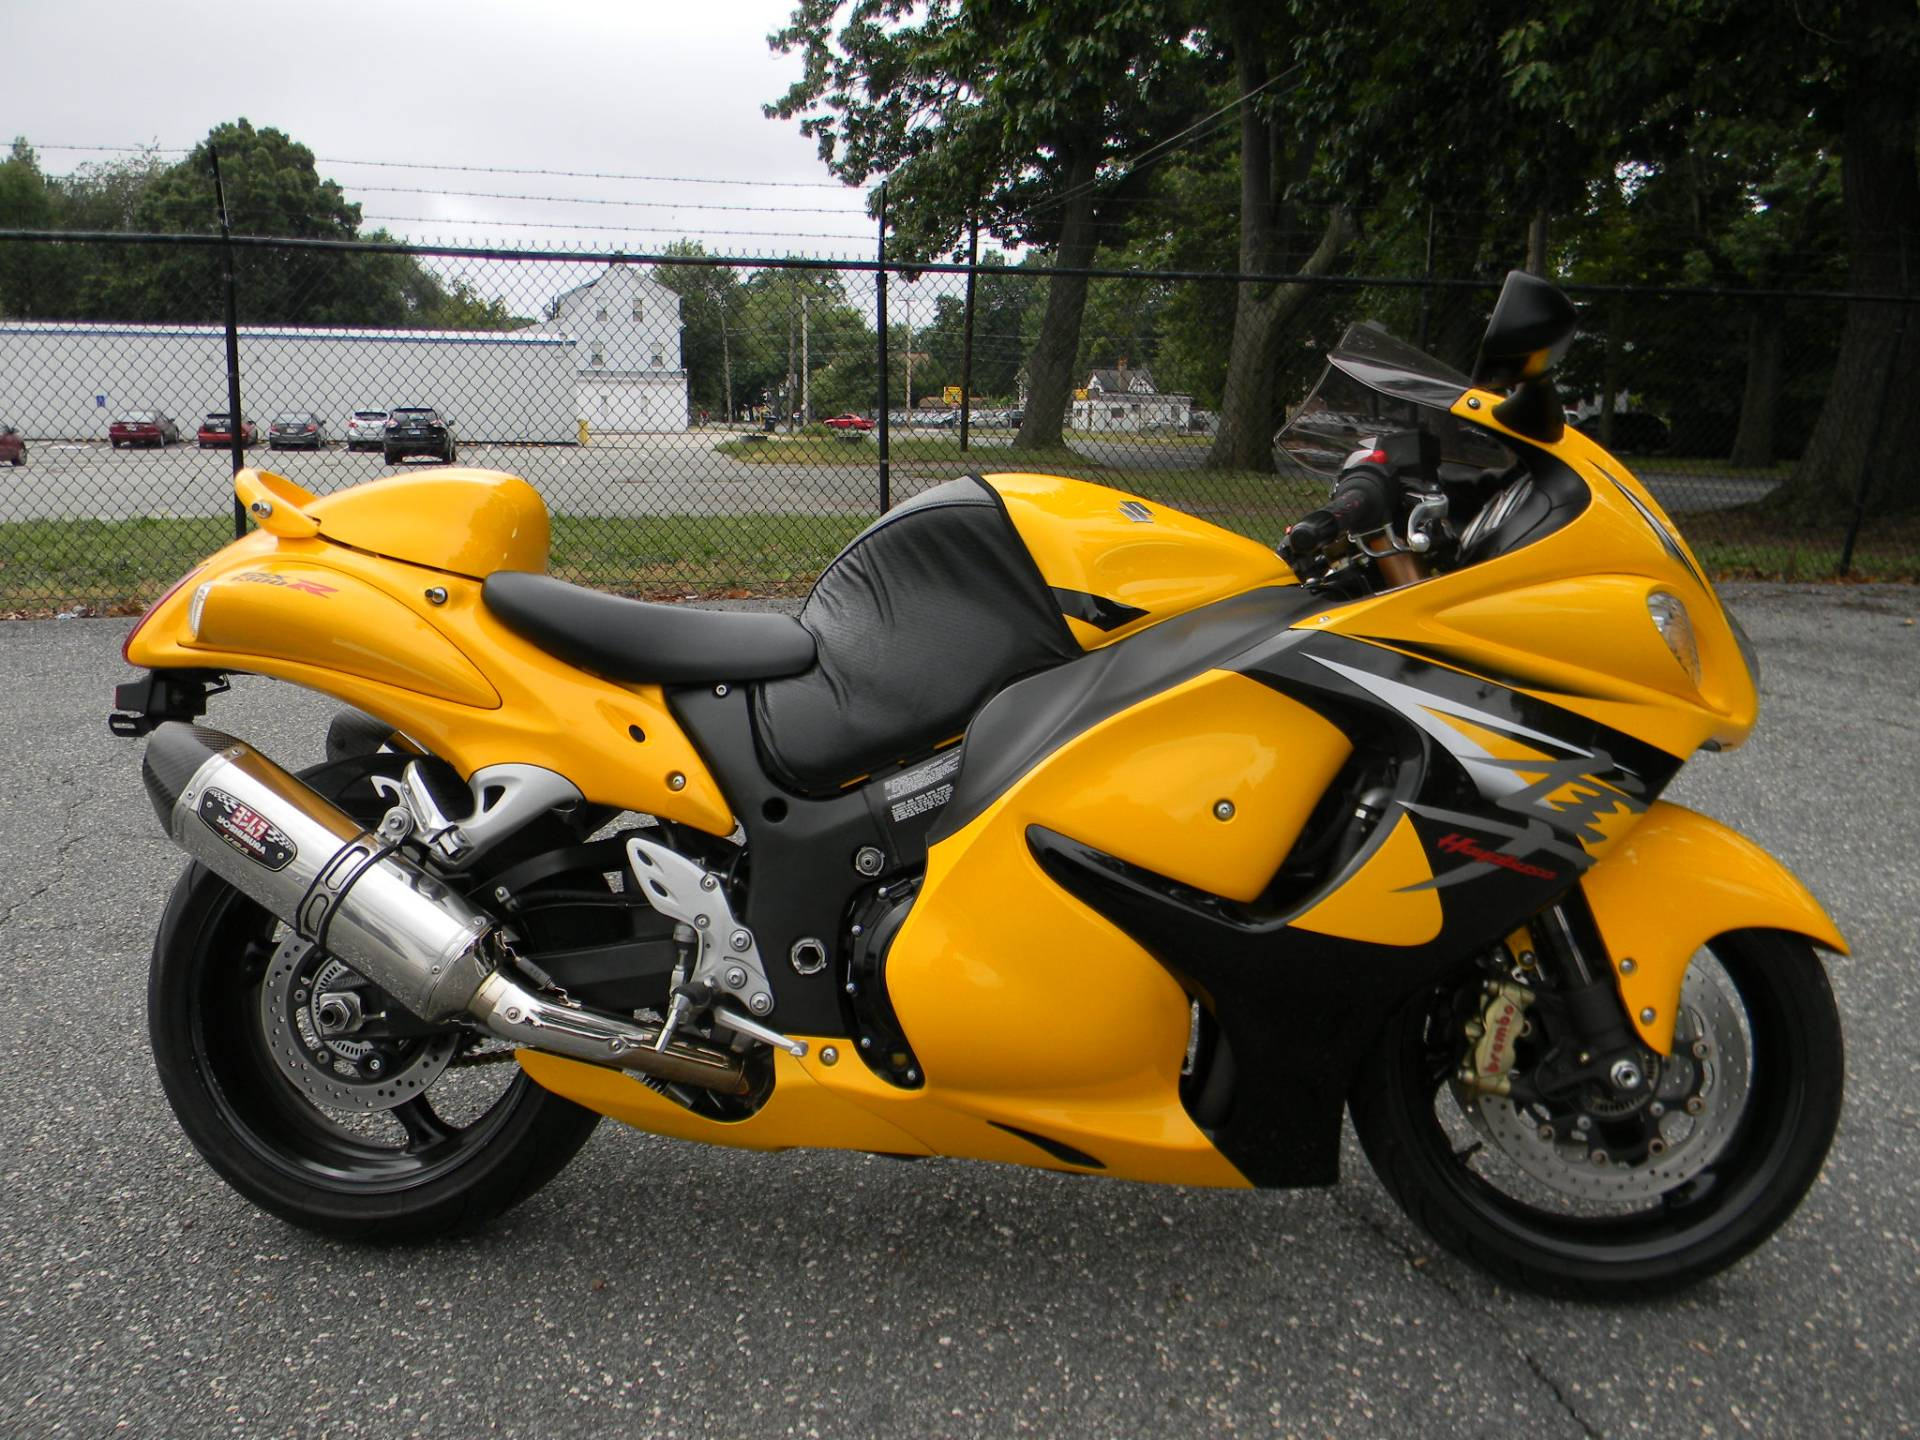 2013 Suzuki Hayabusa Limited Edition for sale 4690